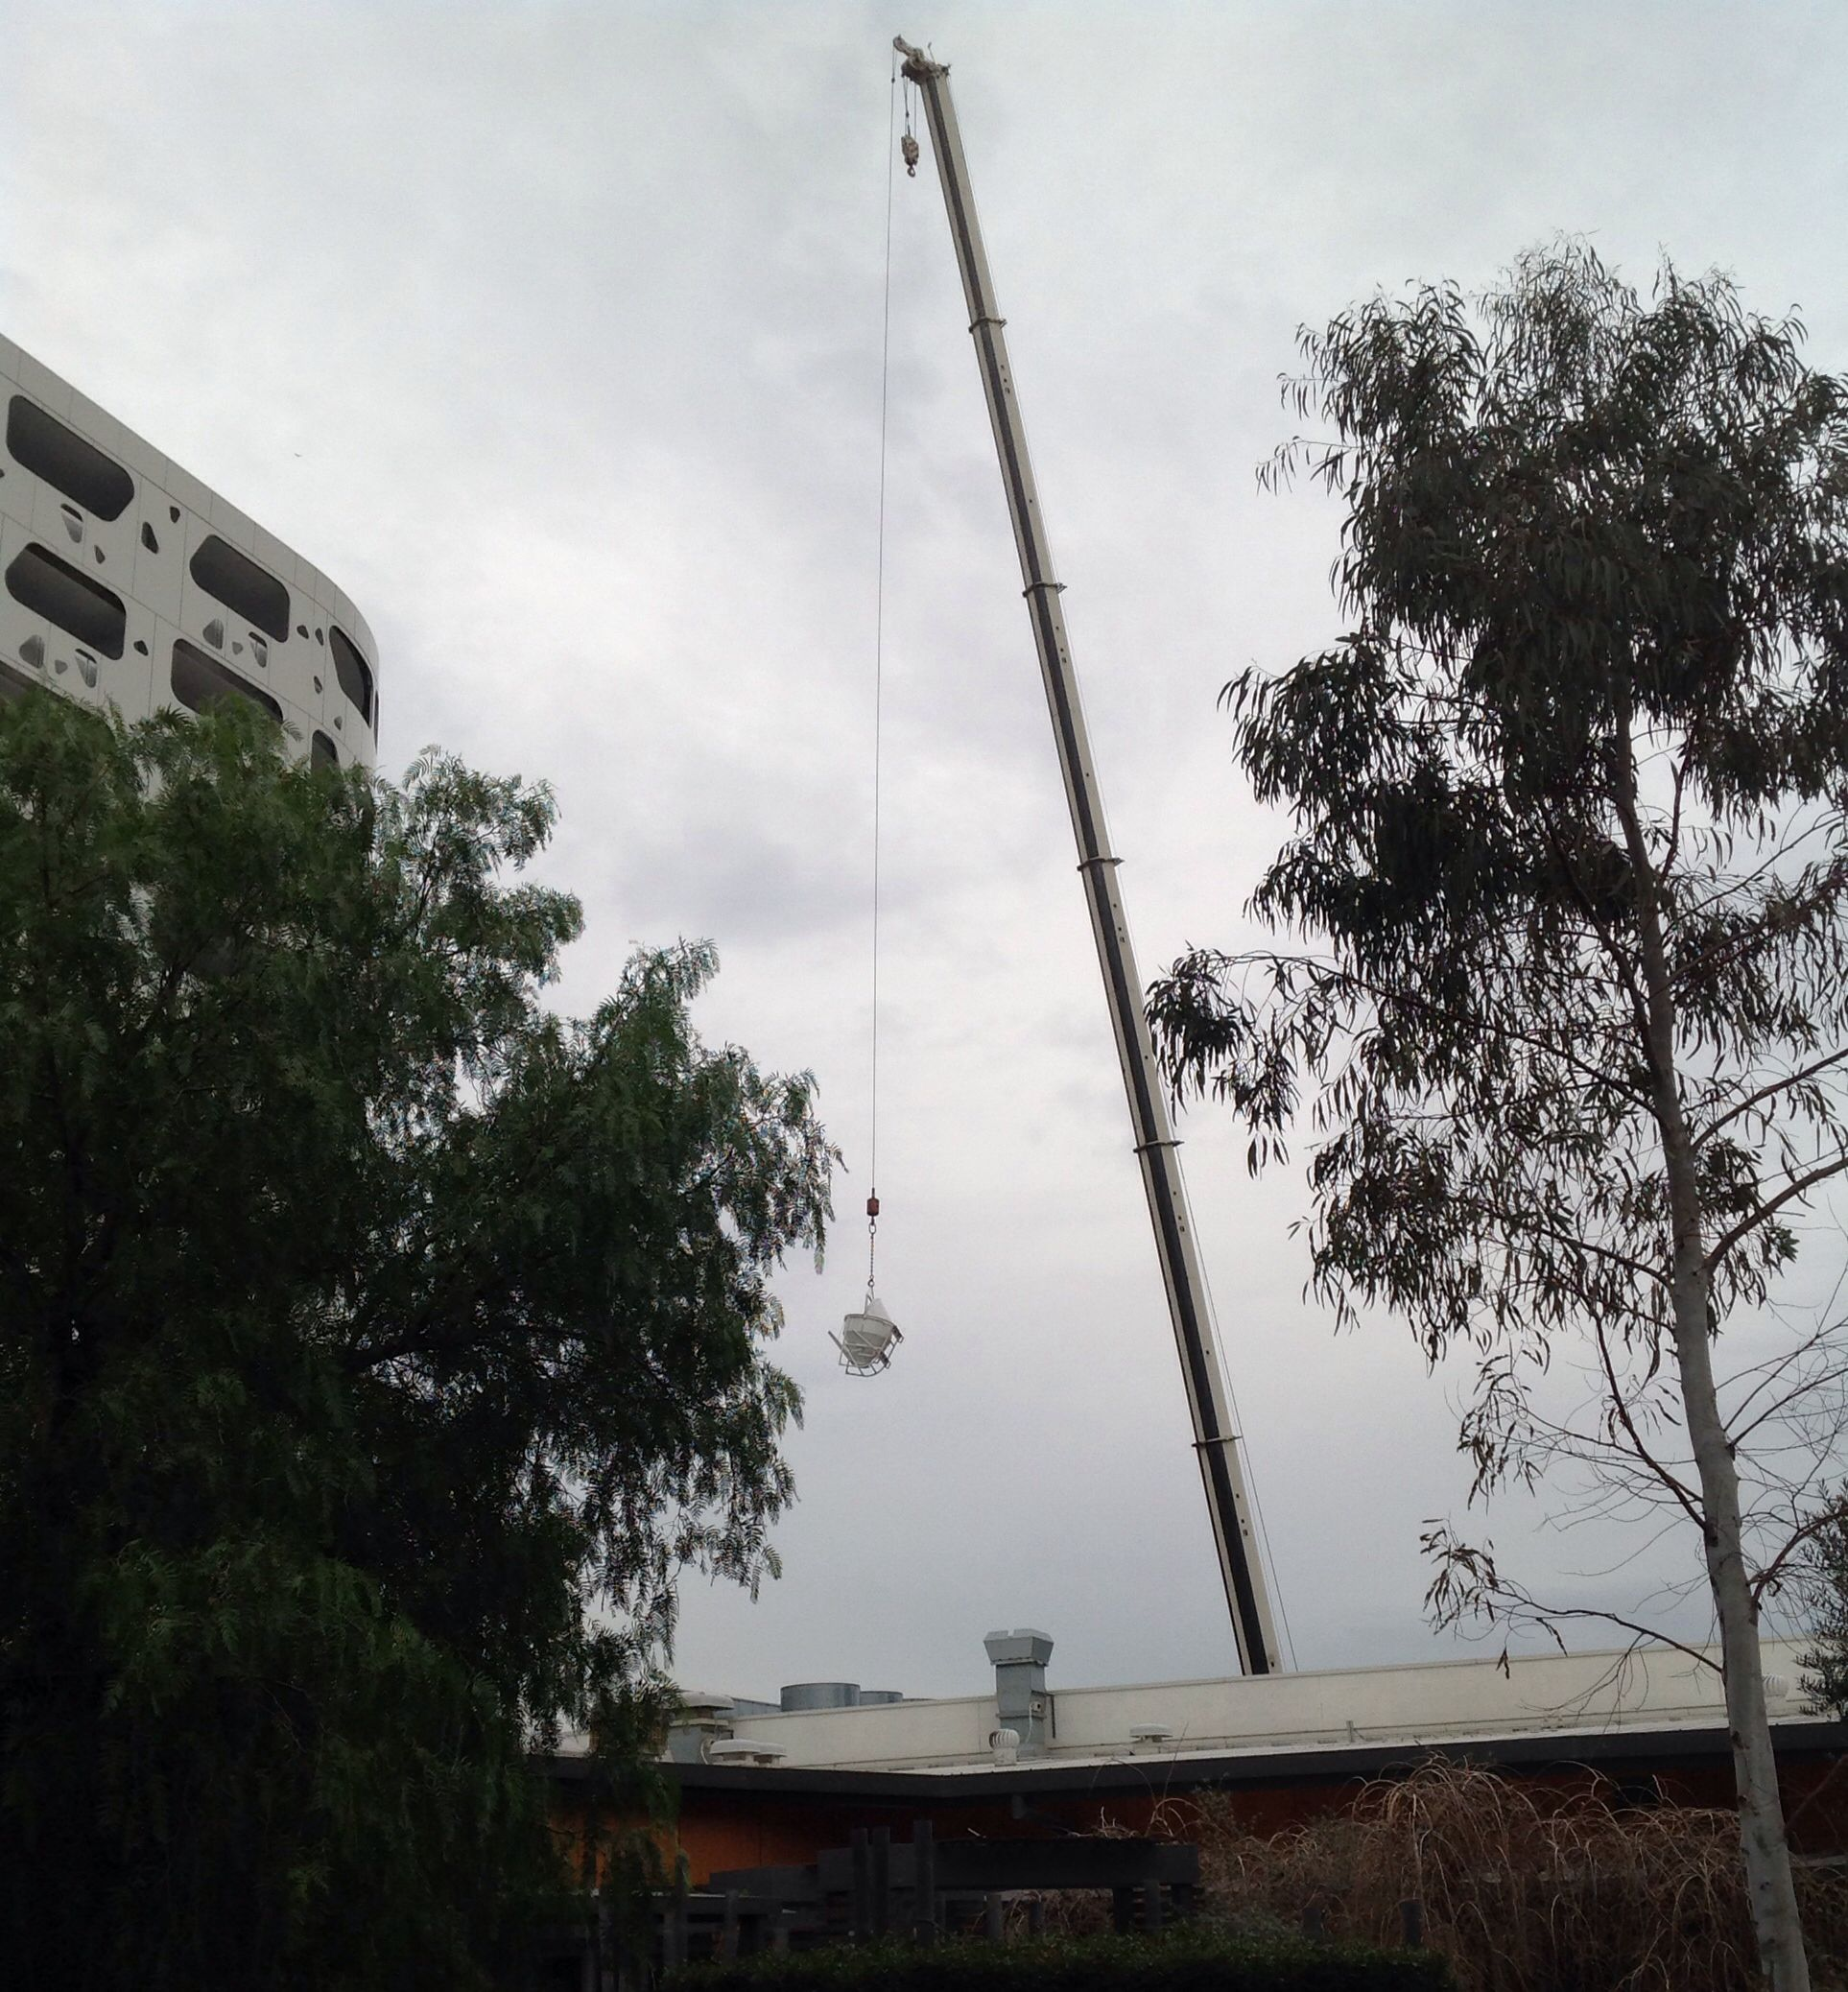 Yesterday We Were Very Excited To Notice A Crane Working